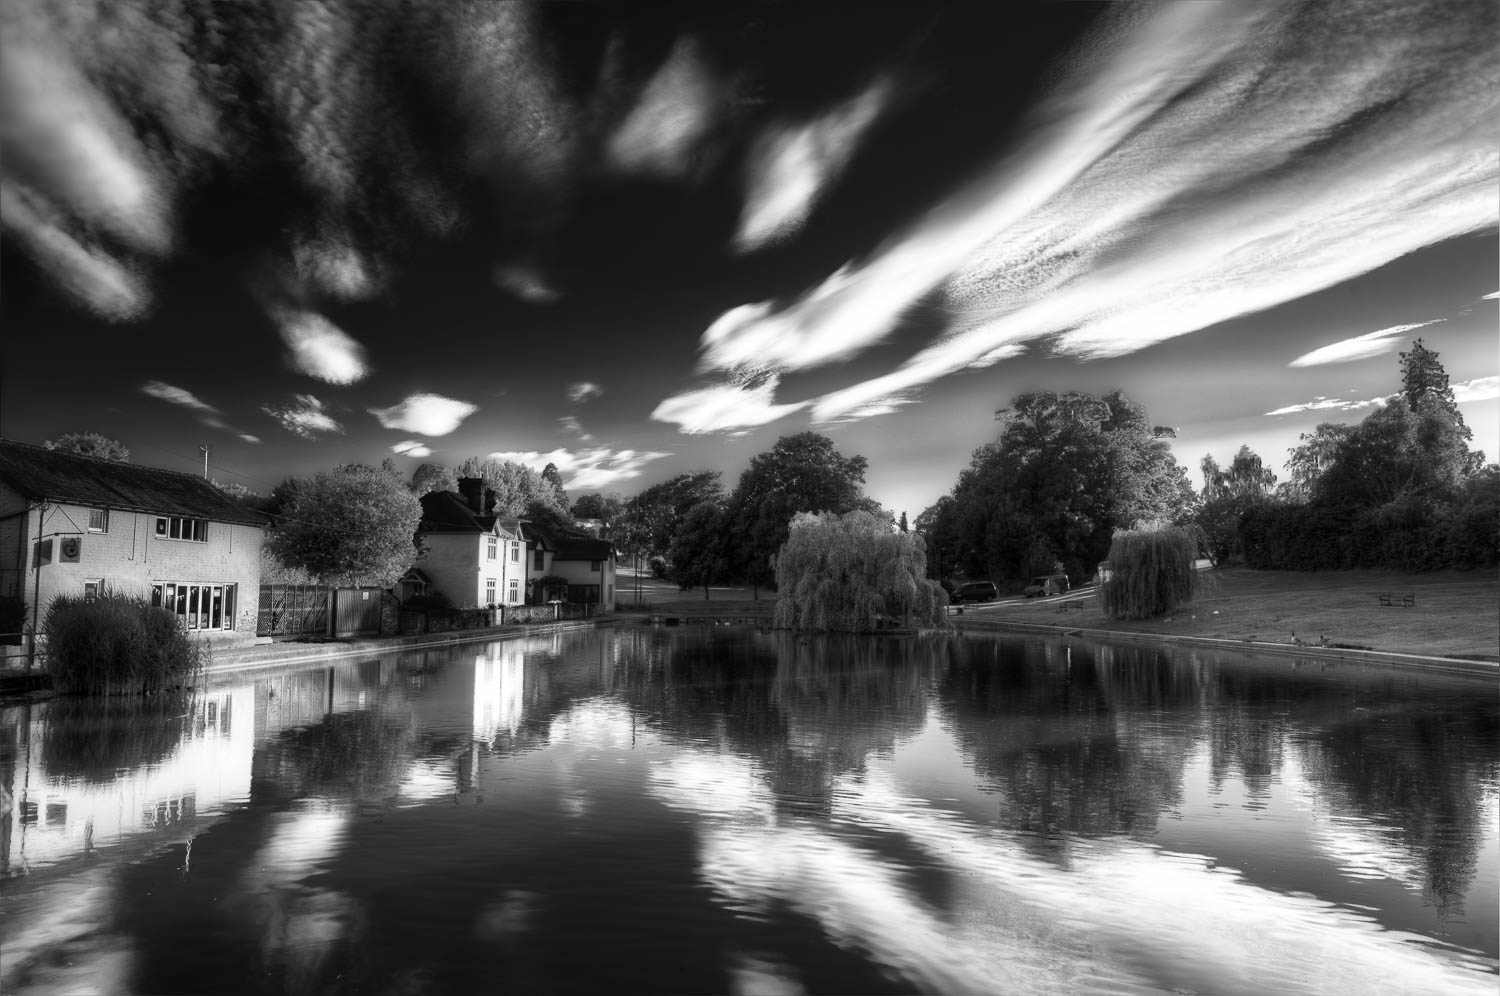 Doctors Pond in Black and White